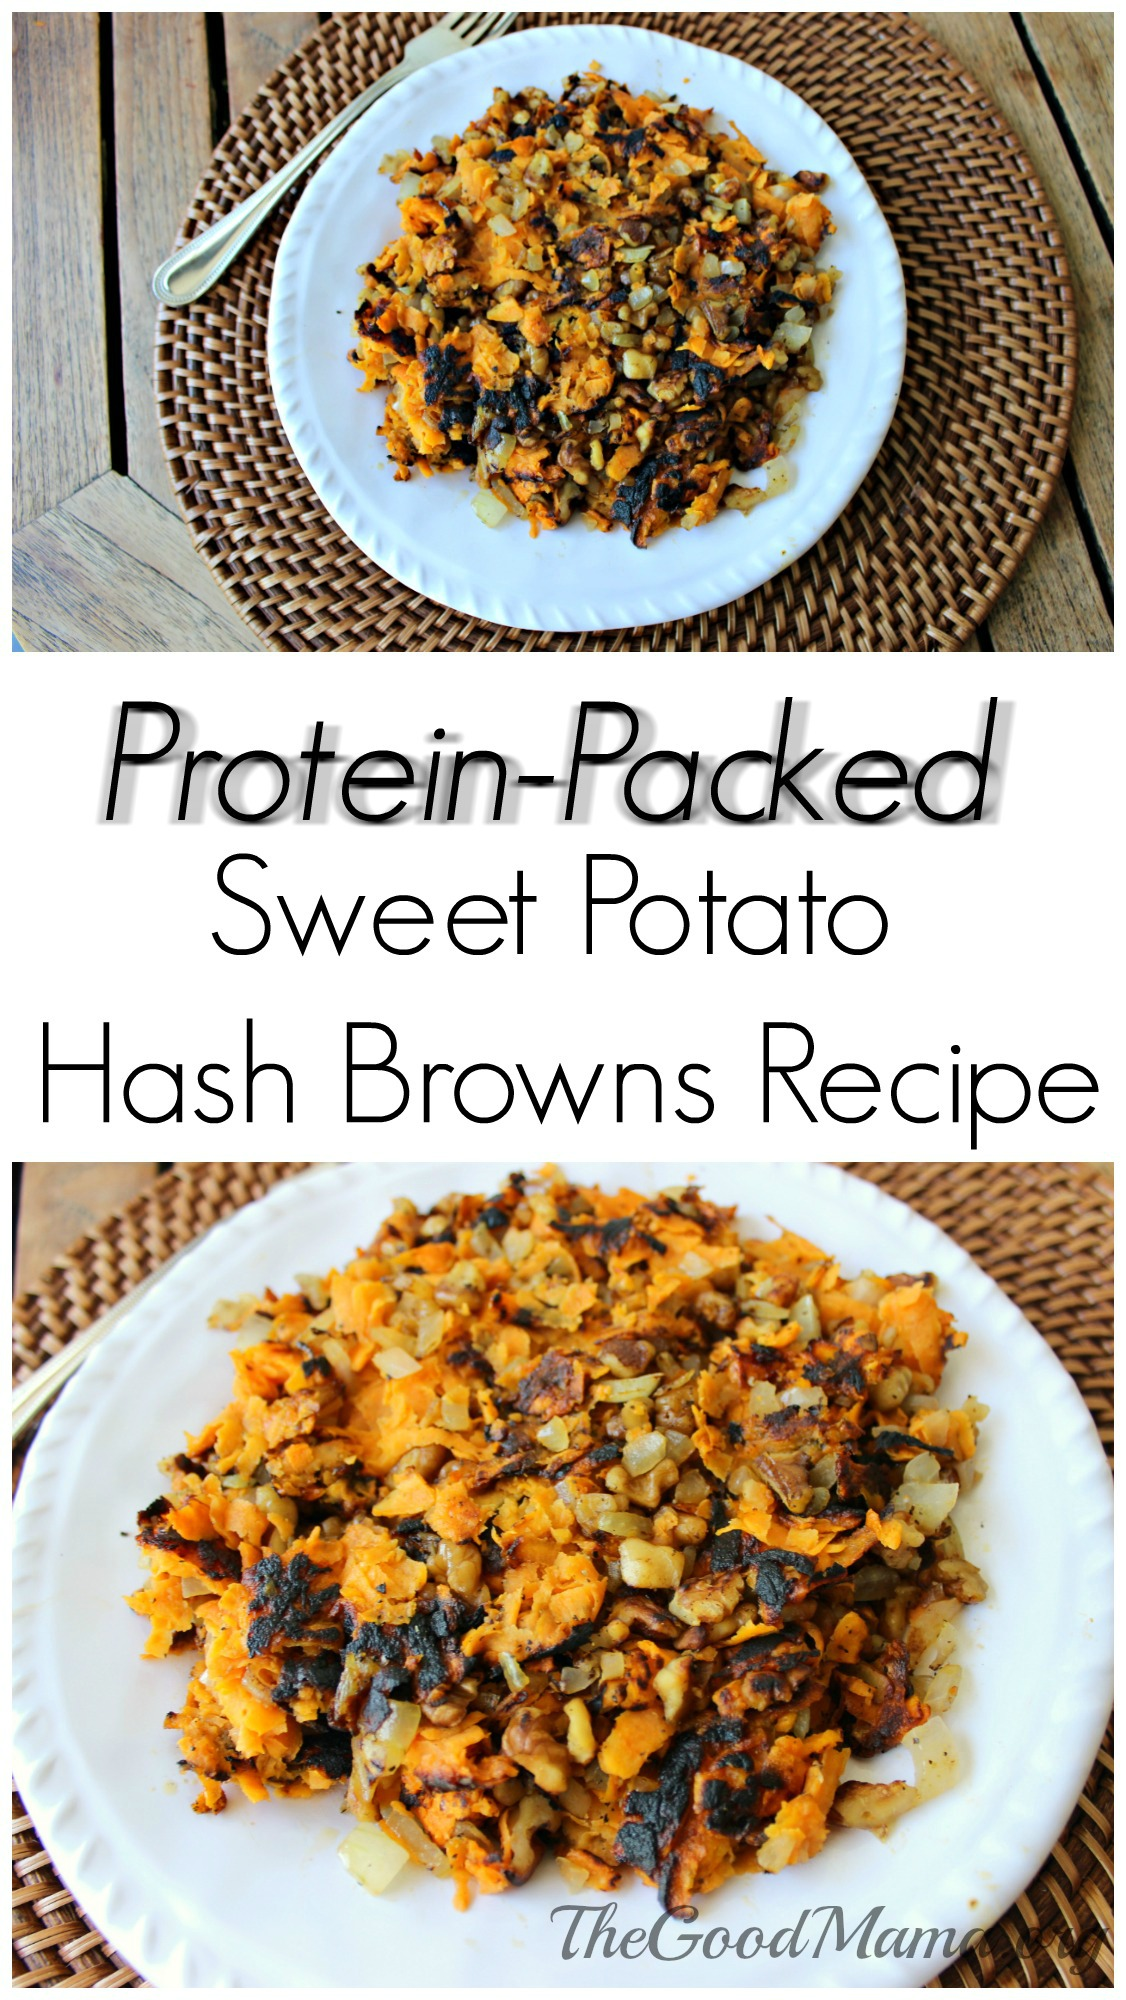 Protein-Packed Sweet Potato Hash Browns Recipe